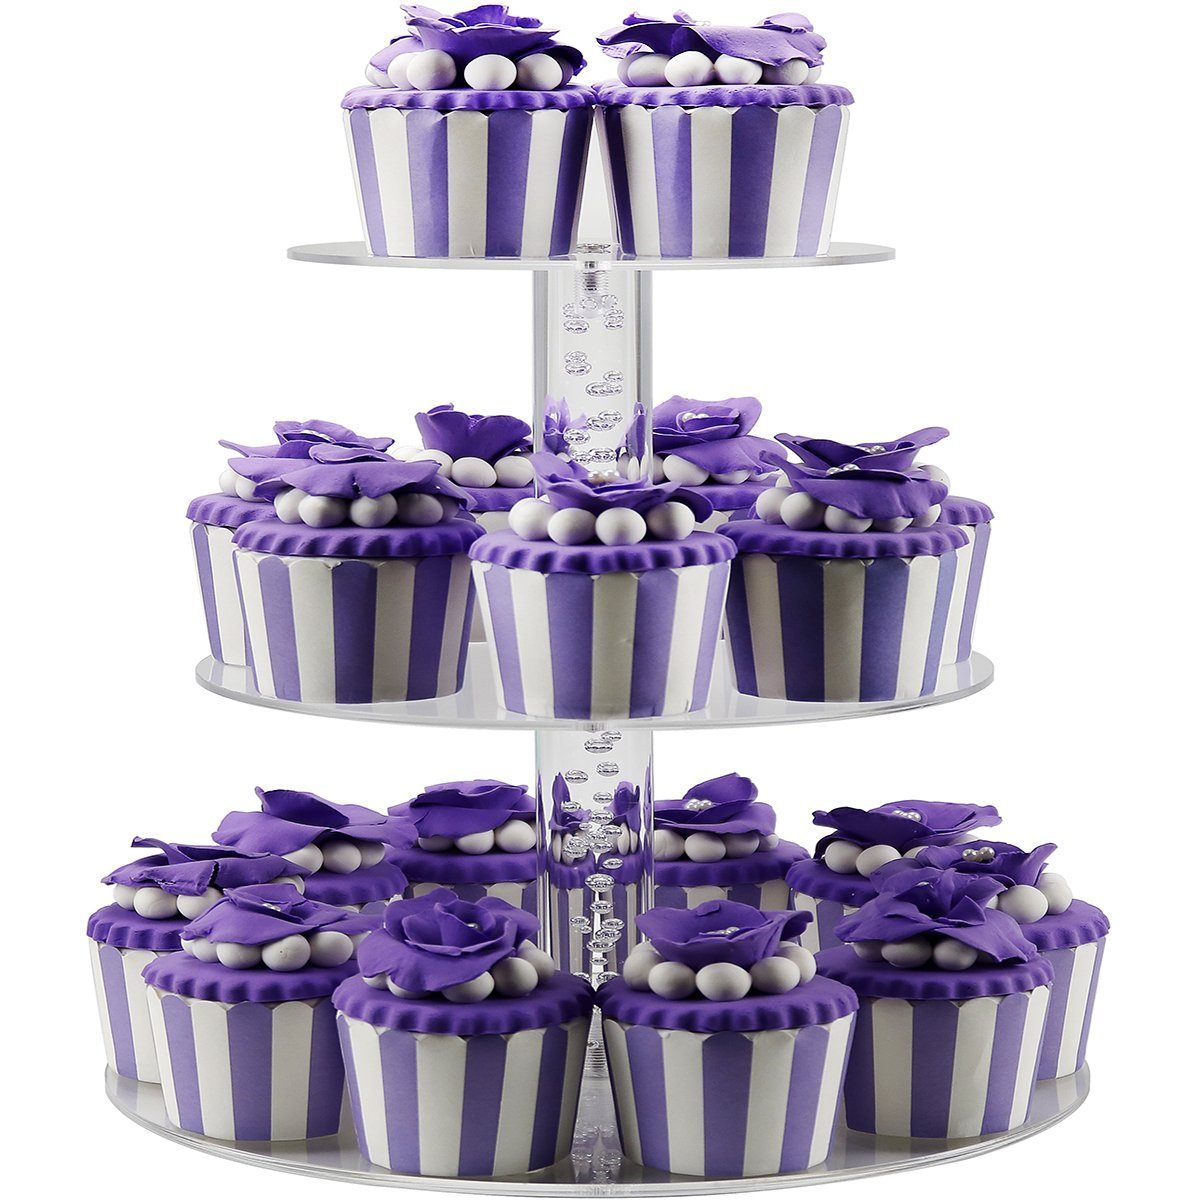 DYCacrlic 3 Tier Cake Cupcakes Stands Display Tree For Baby Family Friends,Cupcake Stand Holder for Parties, Acrylic Wedding Cupcake Tower Stand (Amazing Bubble Rod)